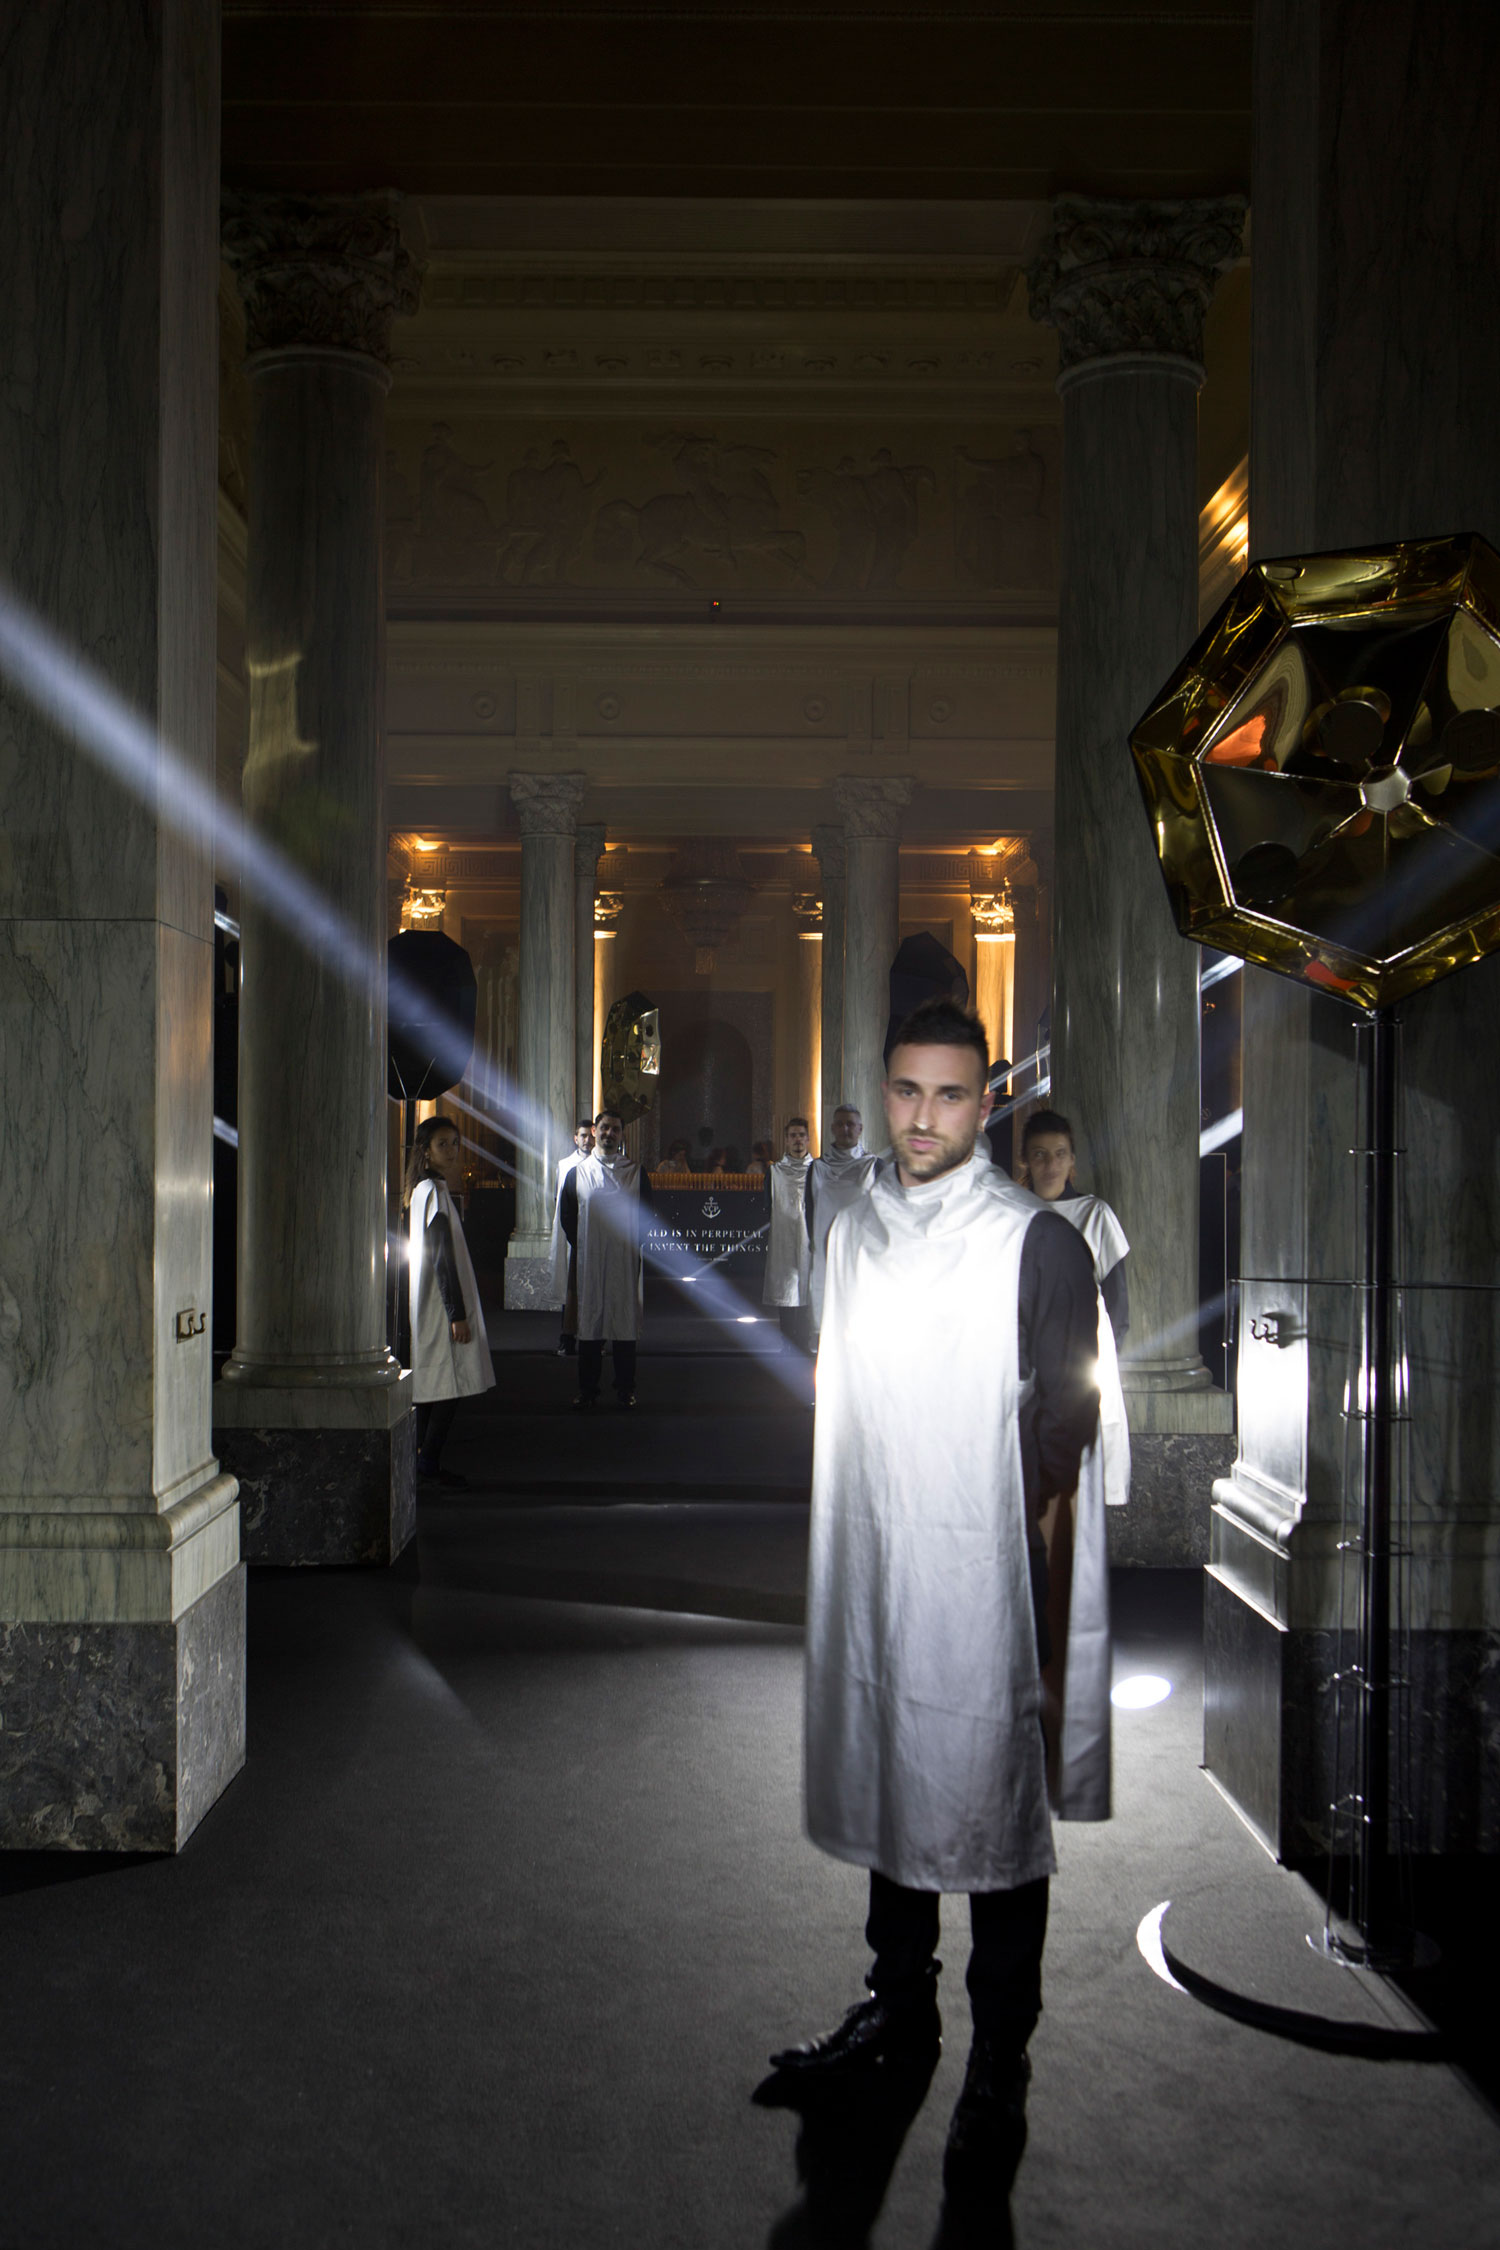 BEYOND: The Veuve Clicquot Journey by Fabrica, Milan Design Week 2016 | #MILANTRACE2016